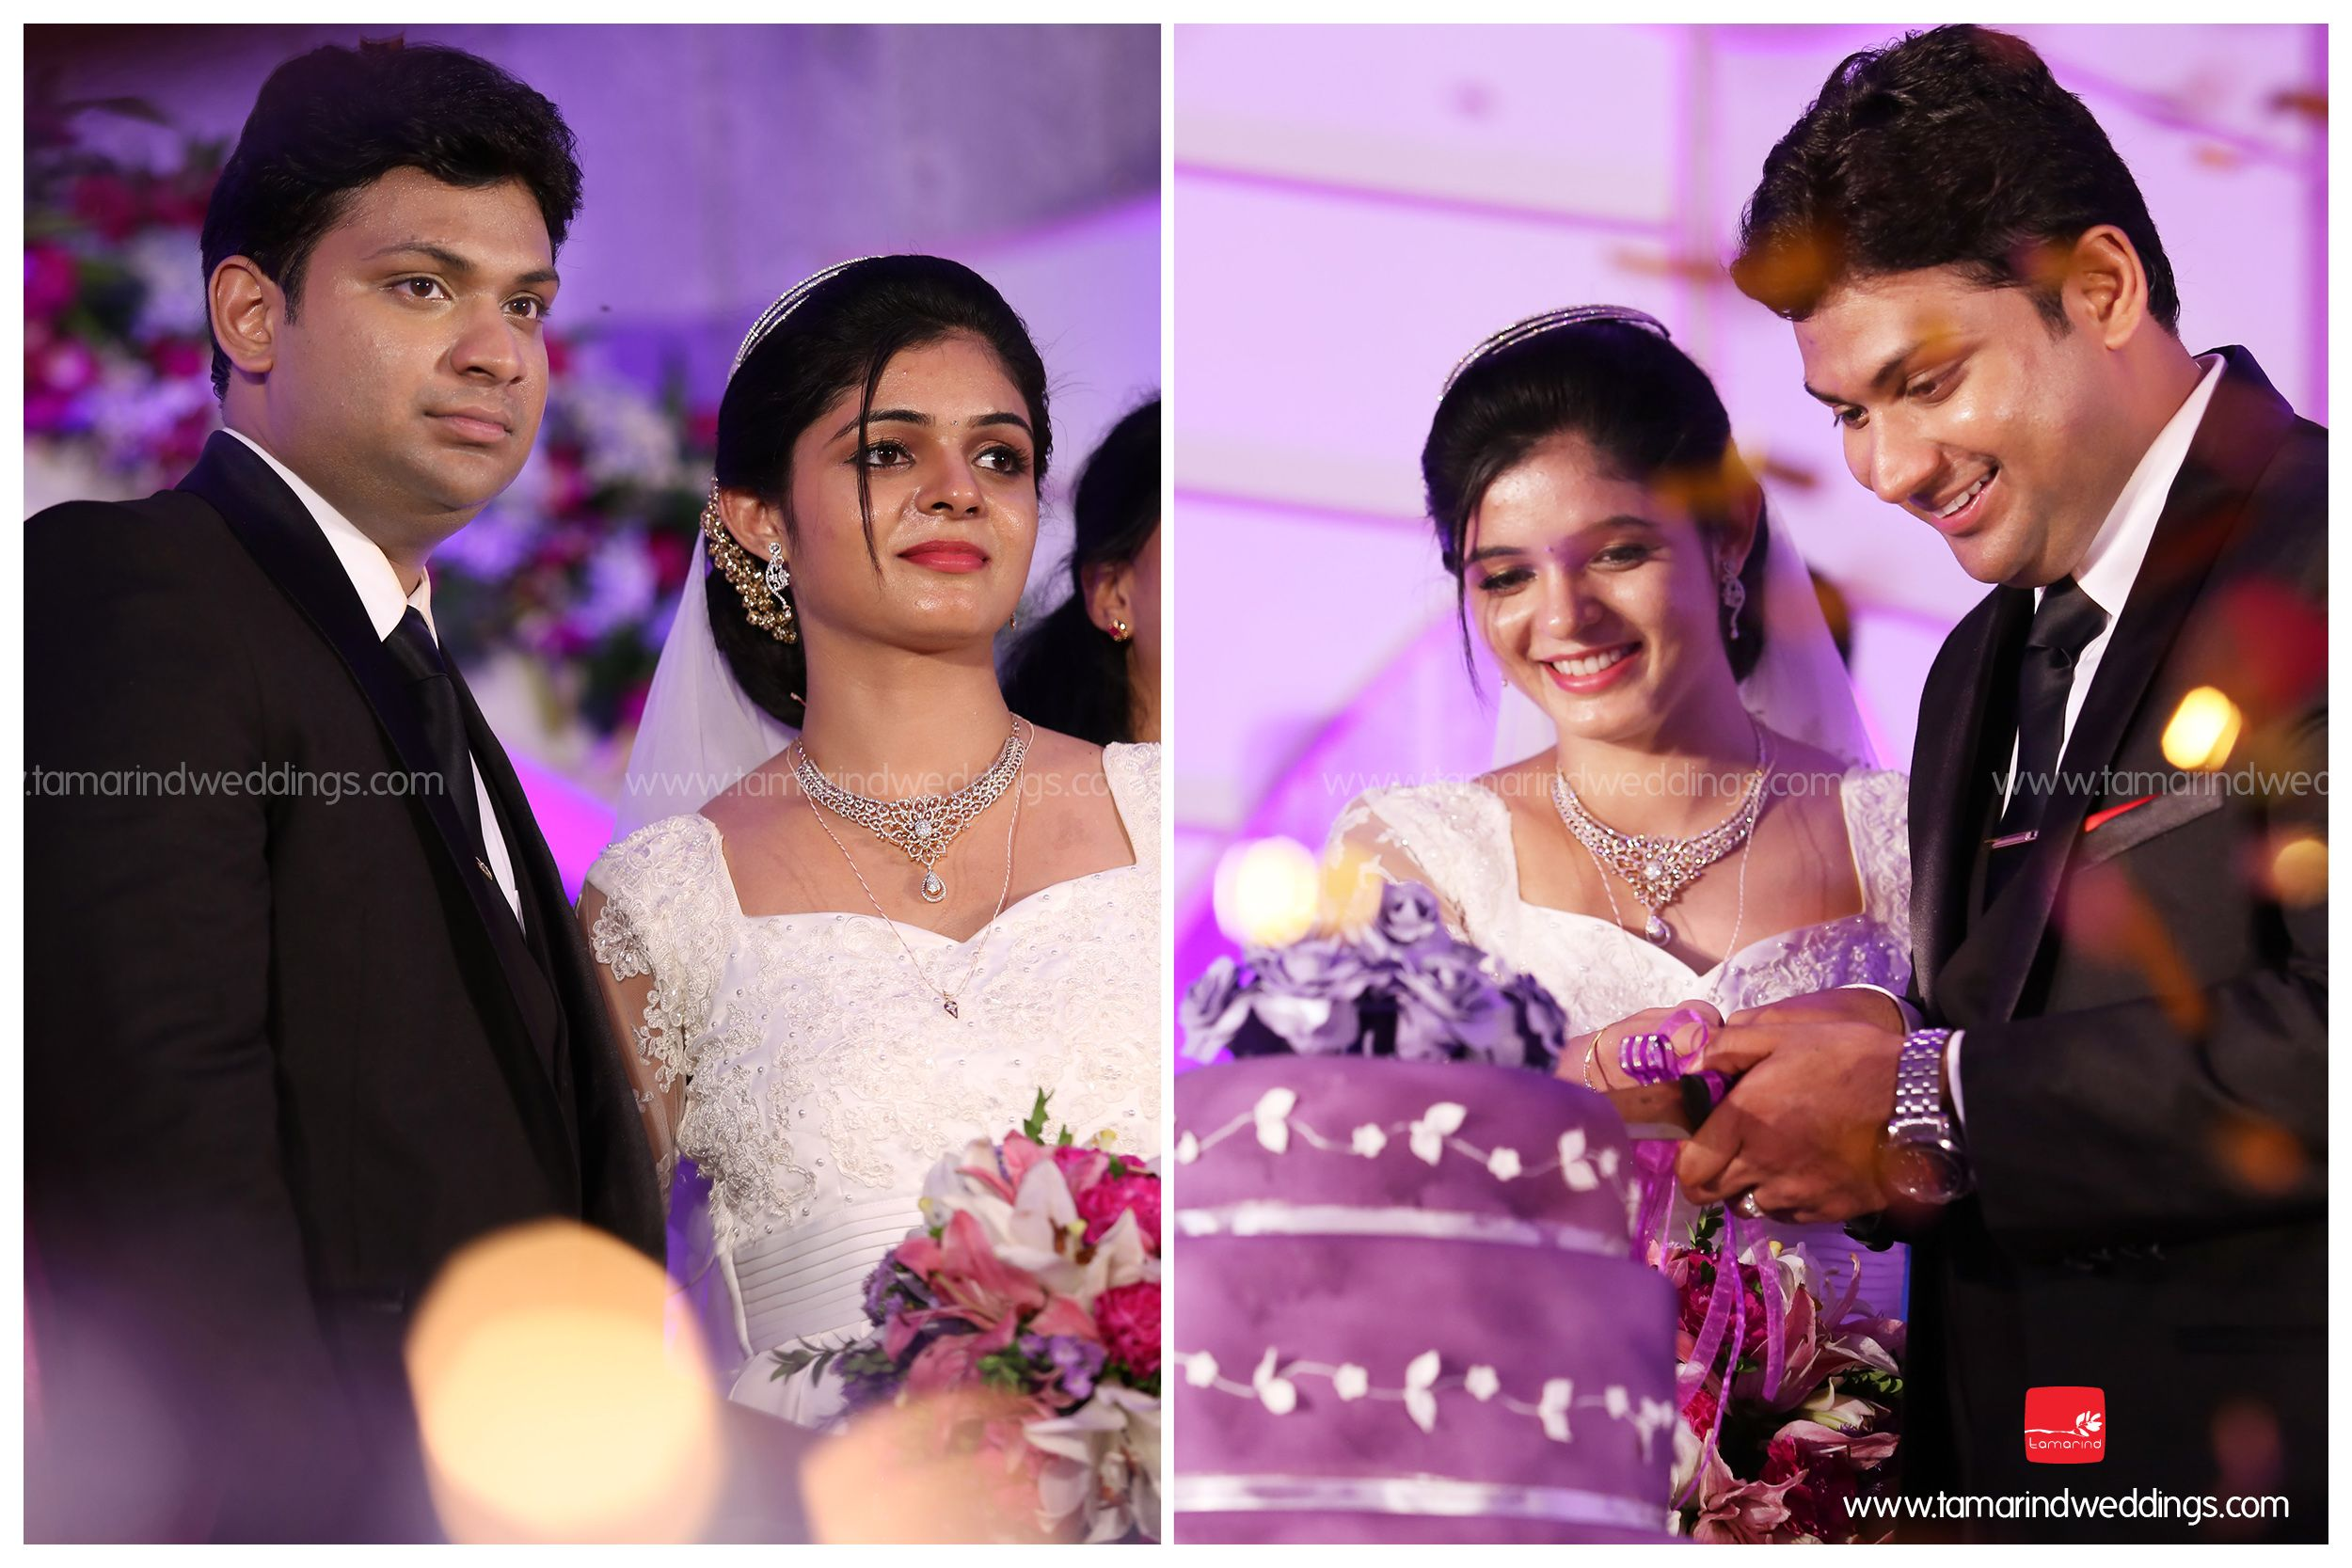 Tamarindweddings nidhin anna wedding pinterest anna